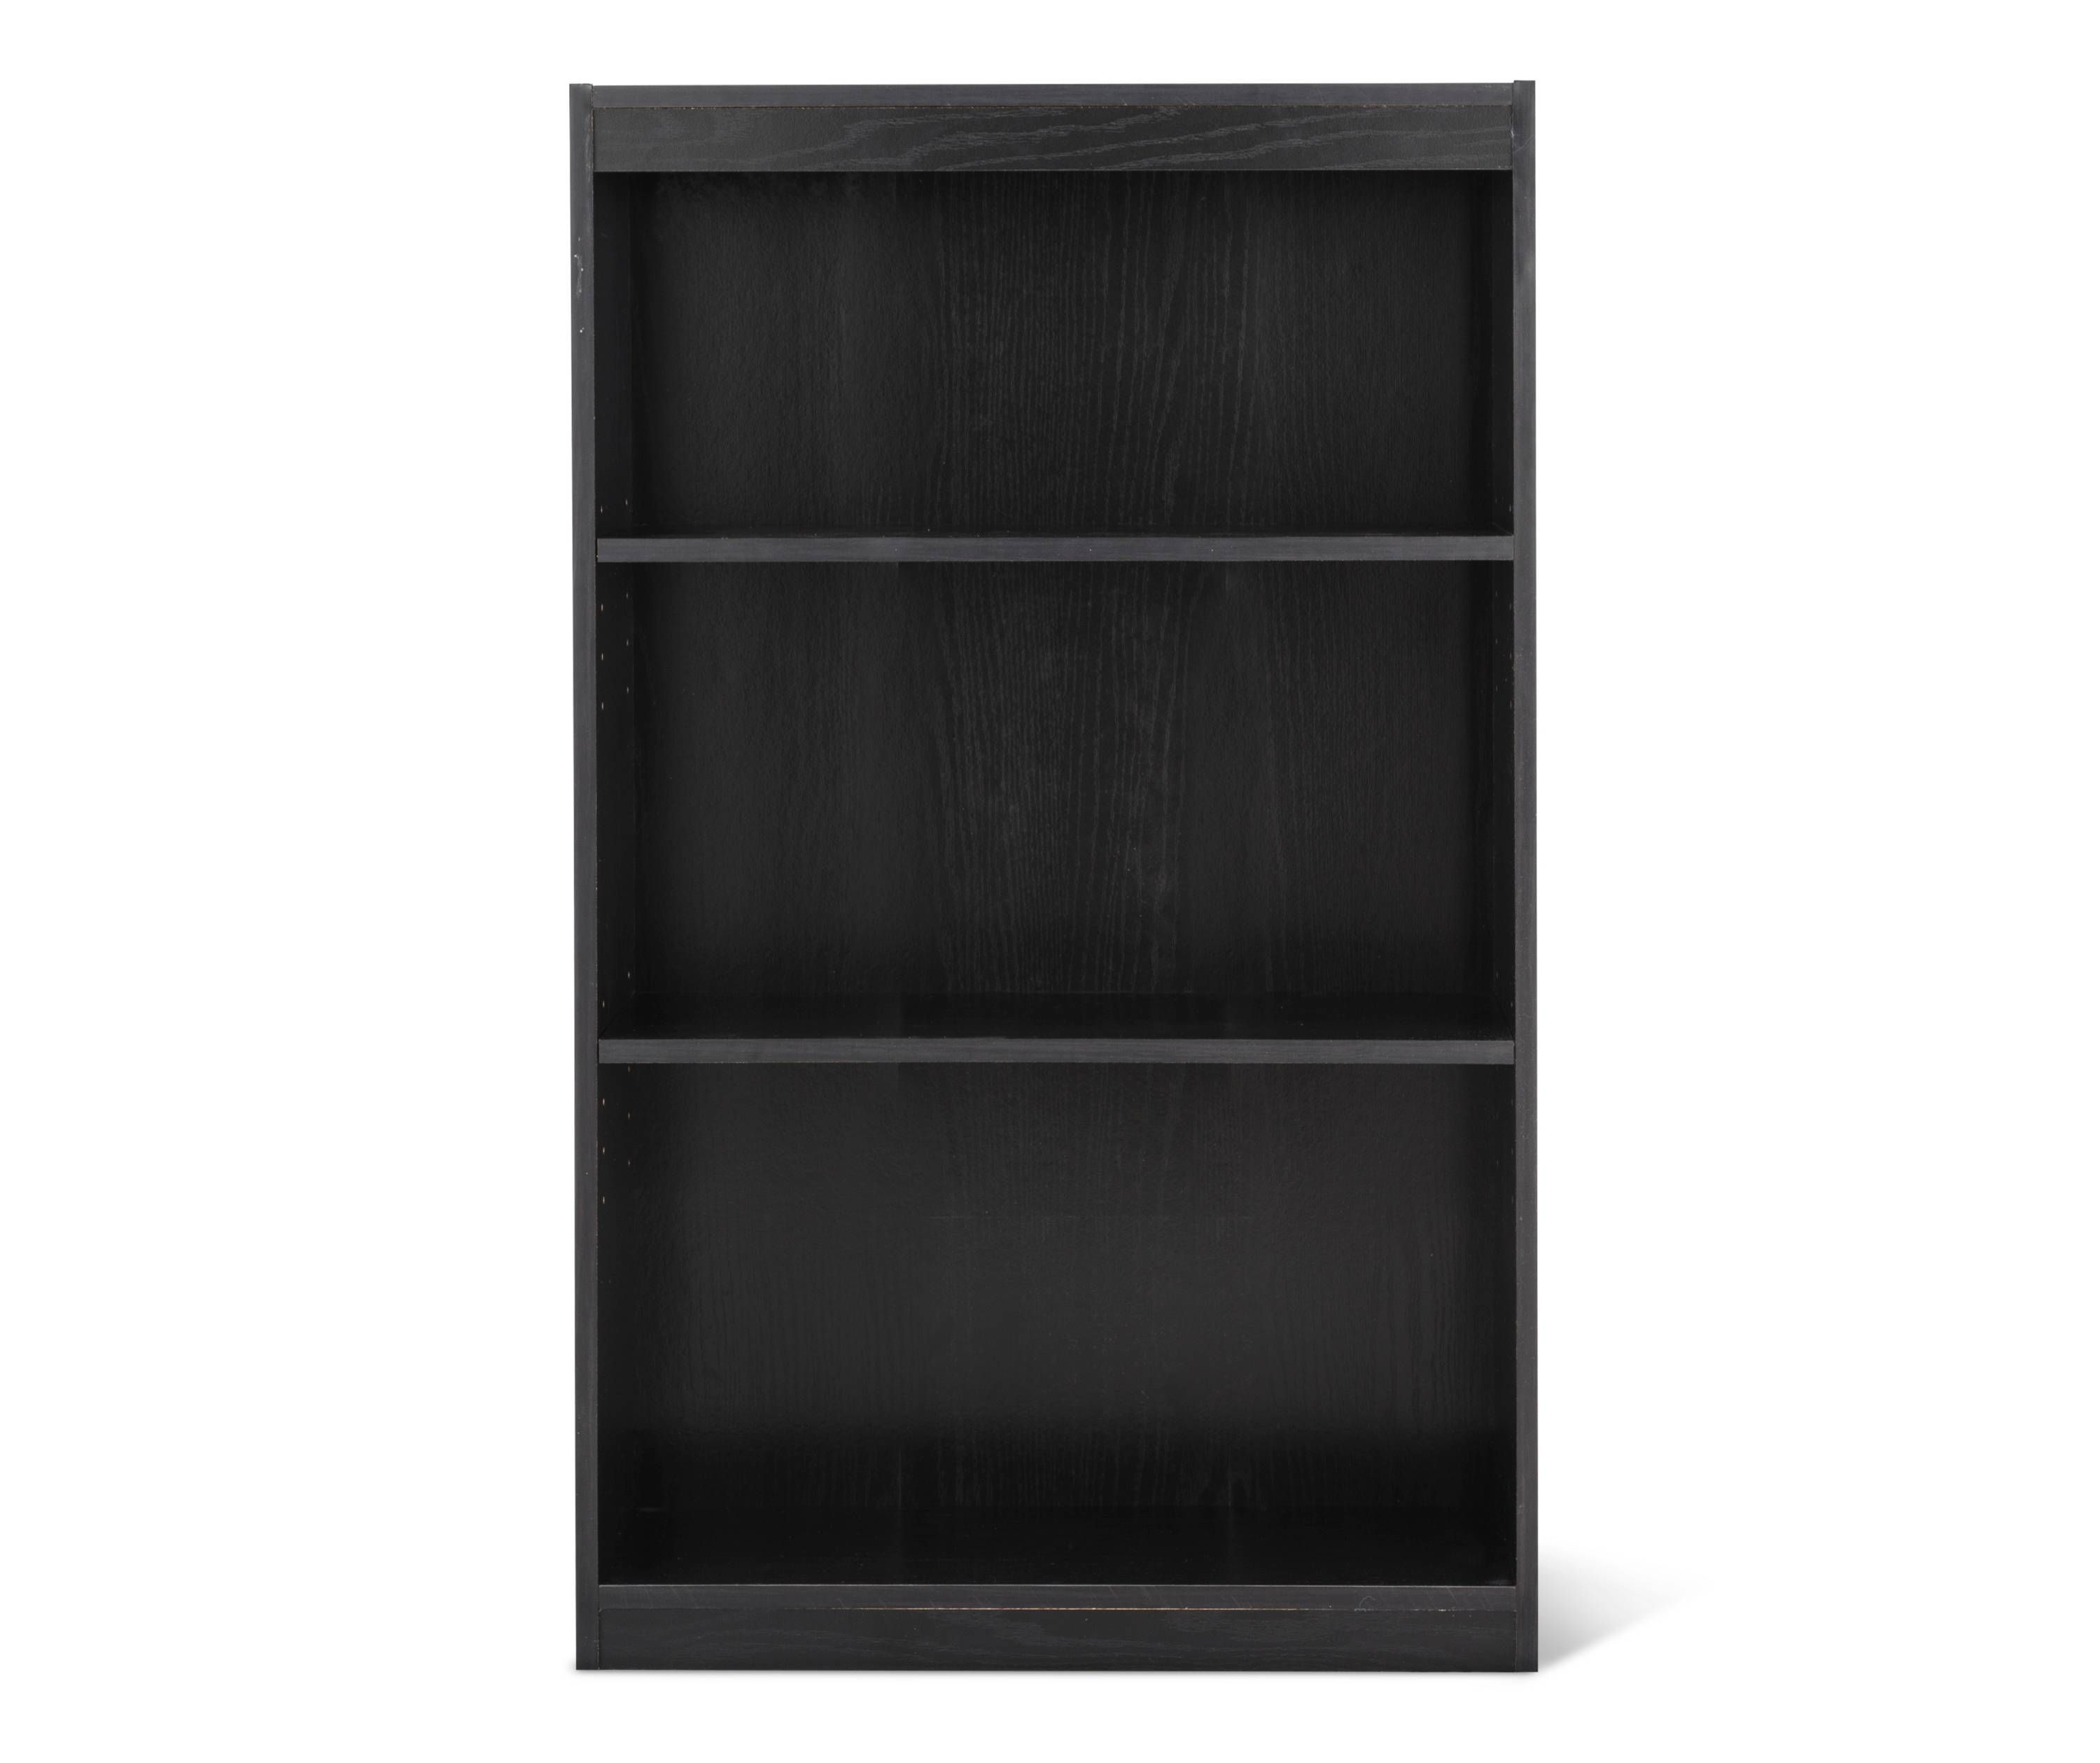 open pin boone modern design br grain sturdy kid natural shelves pillowfort bookshelves bookcases shelf wood target the kids bookcase low bull metal veneer frame